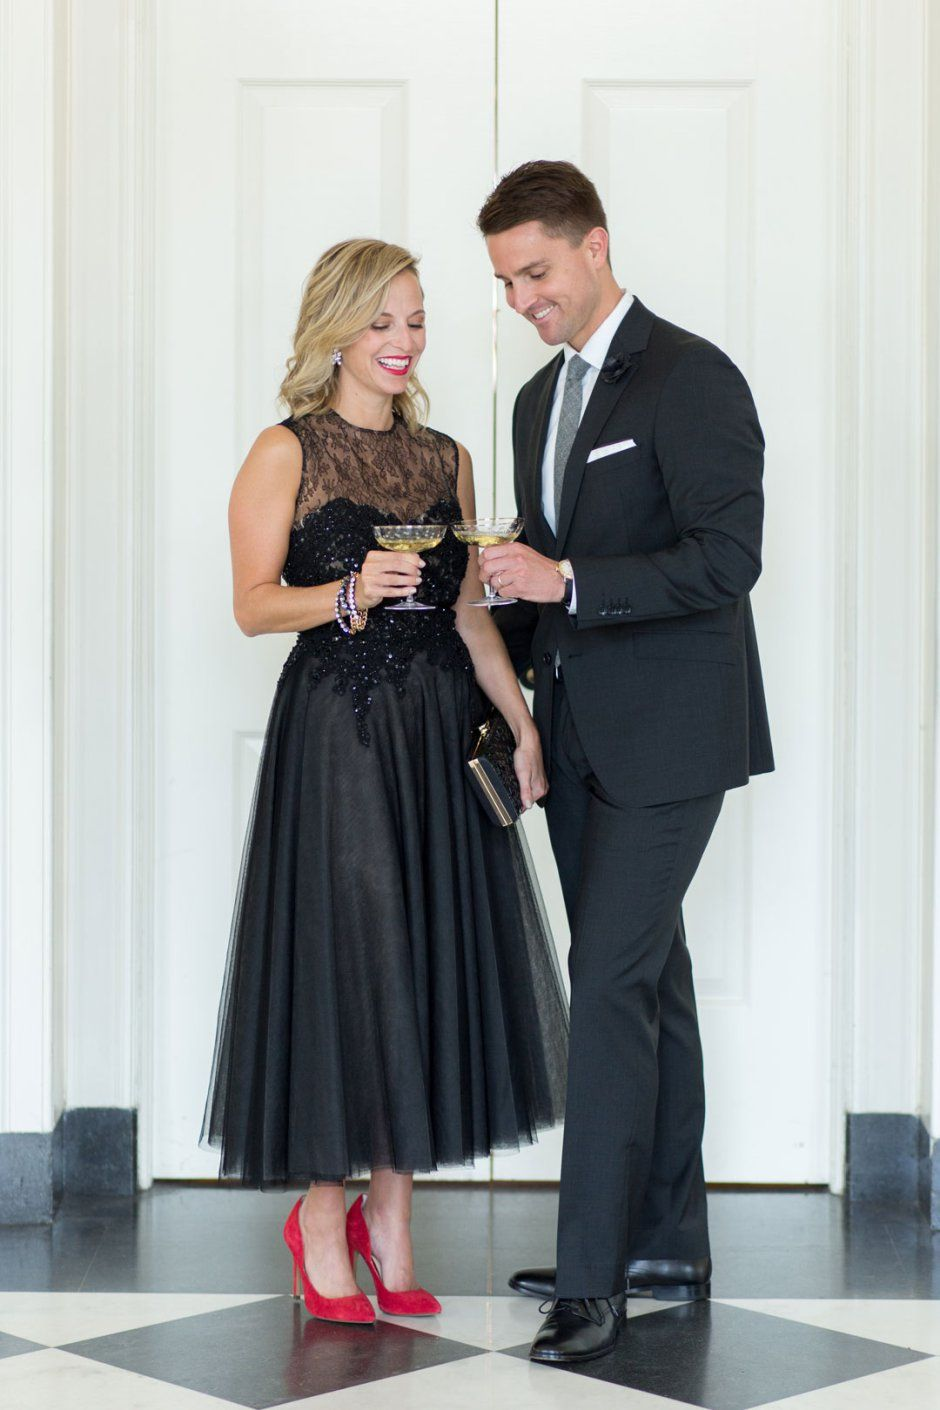 Dress For Black Tie Optional Wedding Dresses The Bride Check More At